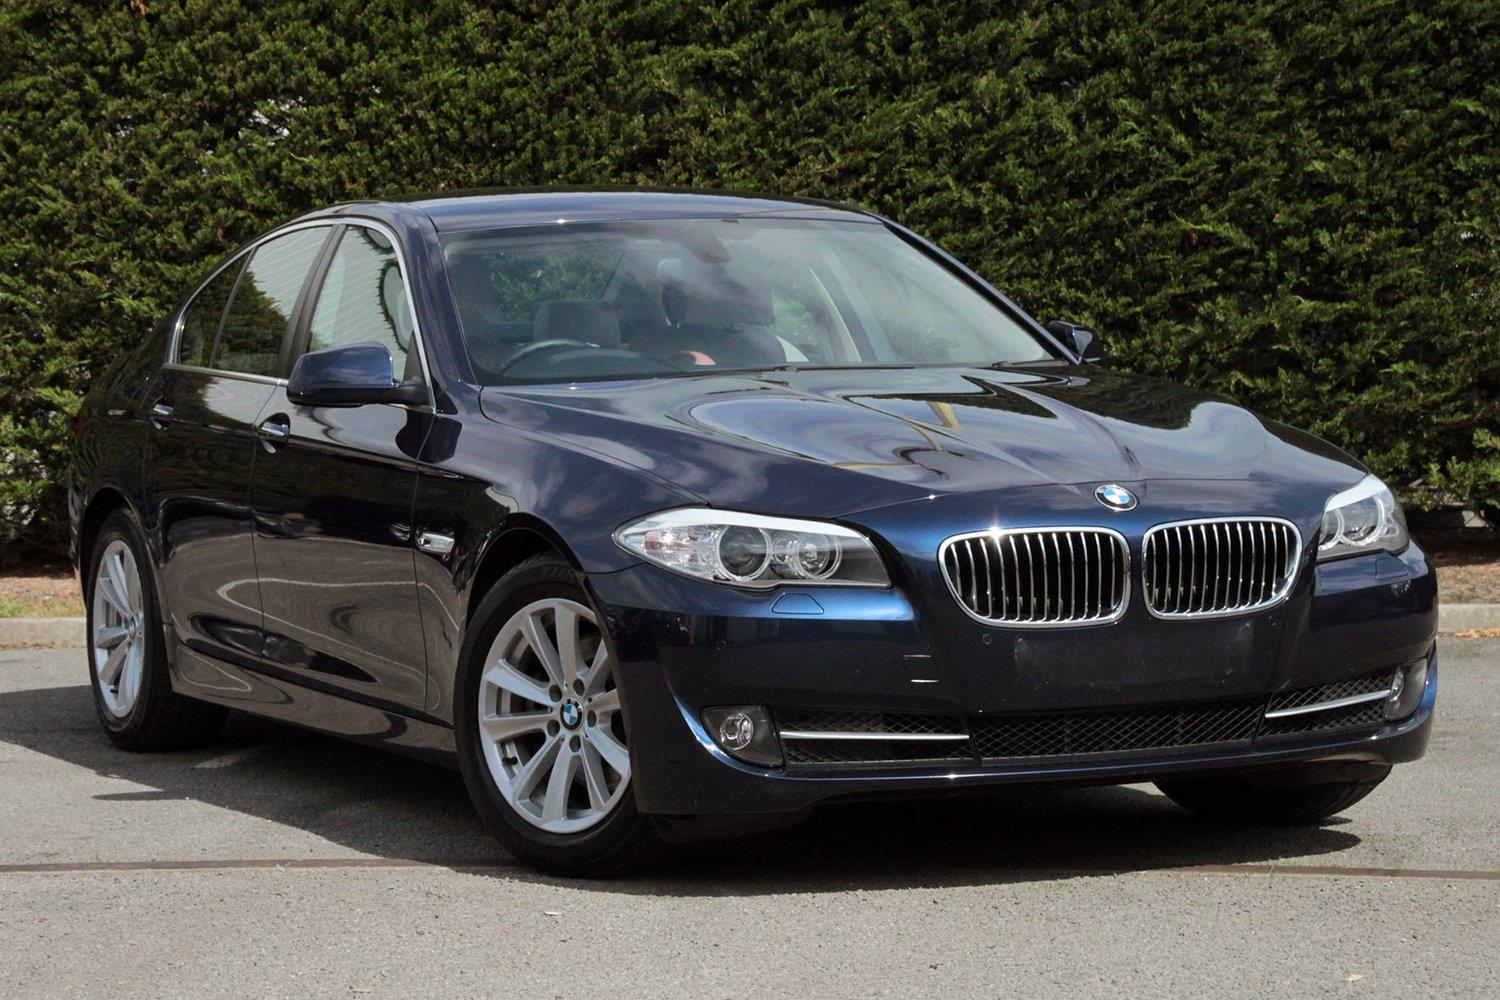 BMW 5 Series Saloon YD13LNA - Image 2